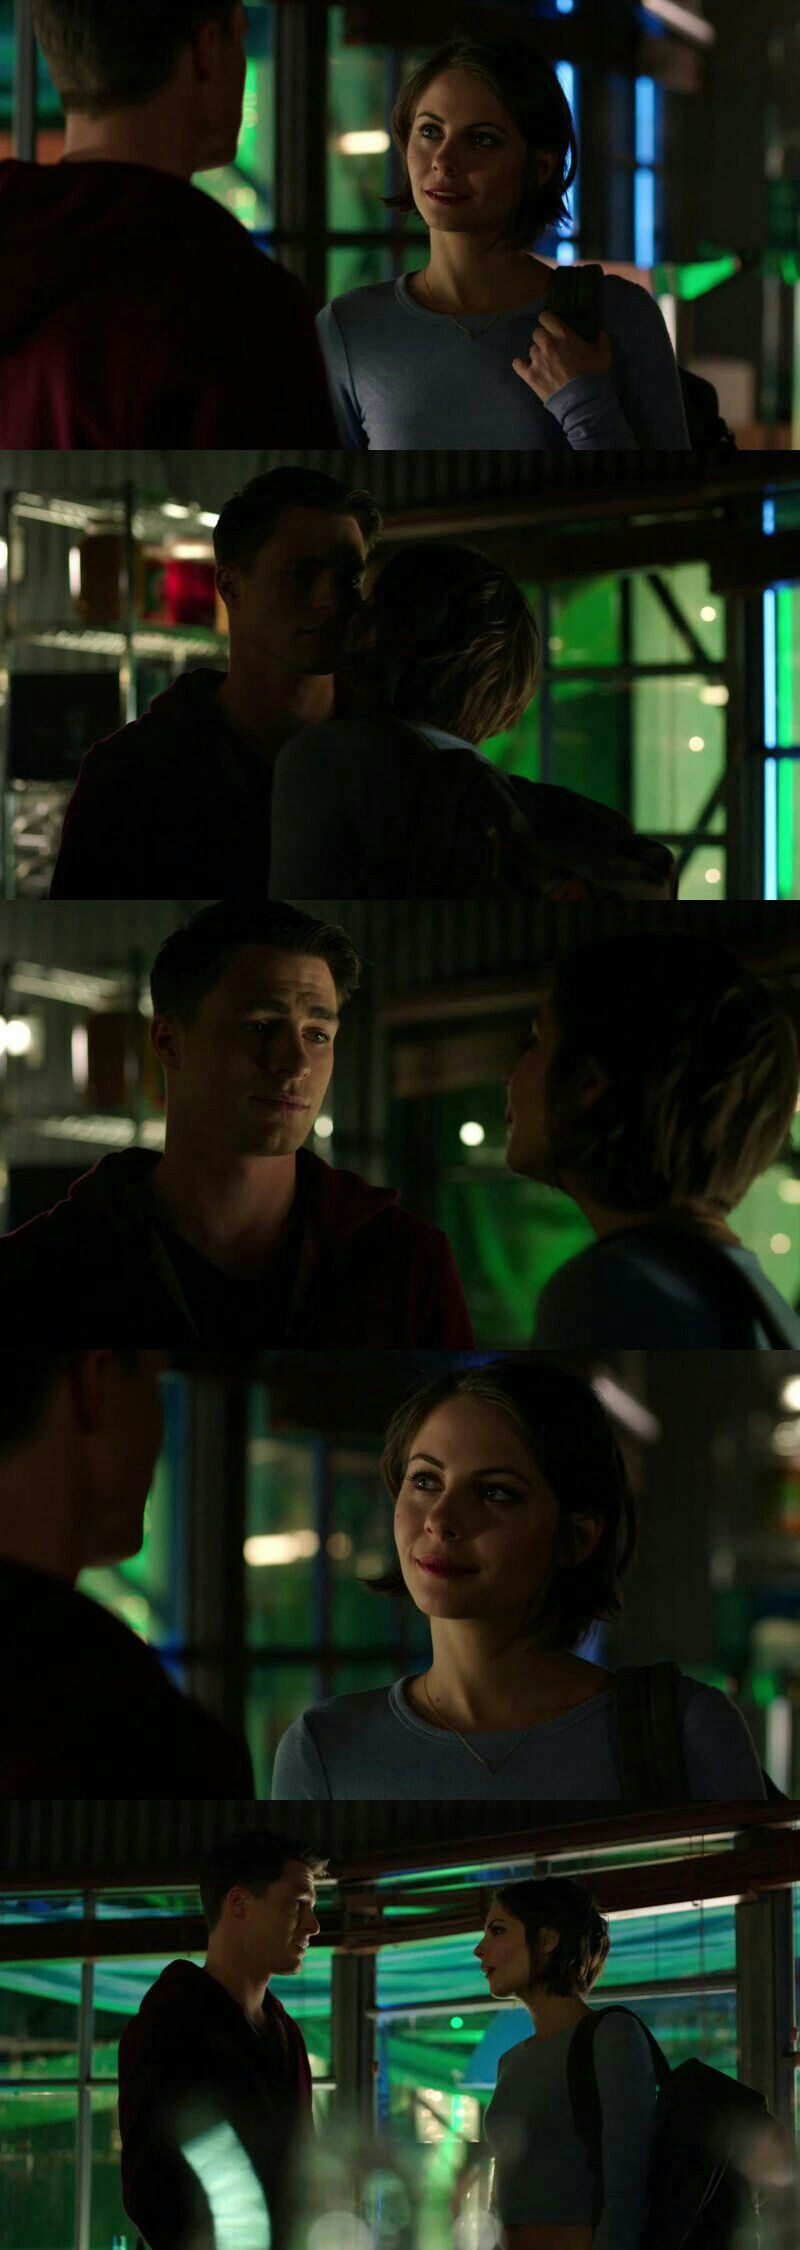 #Arrow3x13 #RoyHarper and #TheaQueen They are so cute together